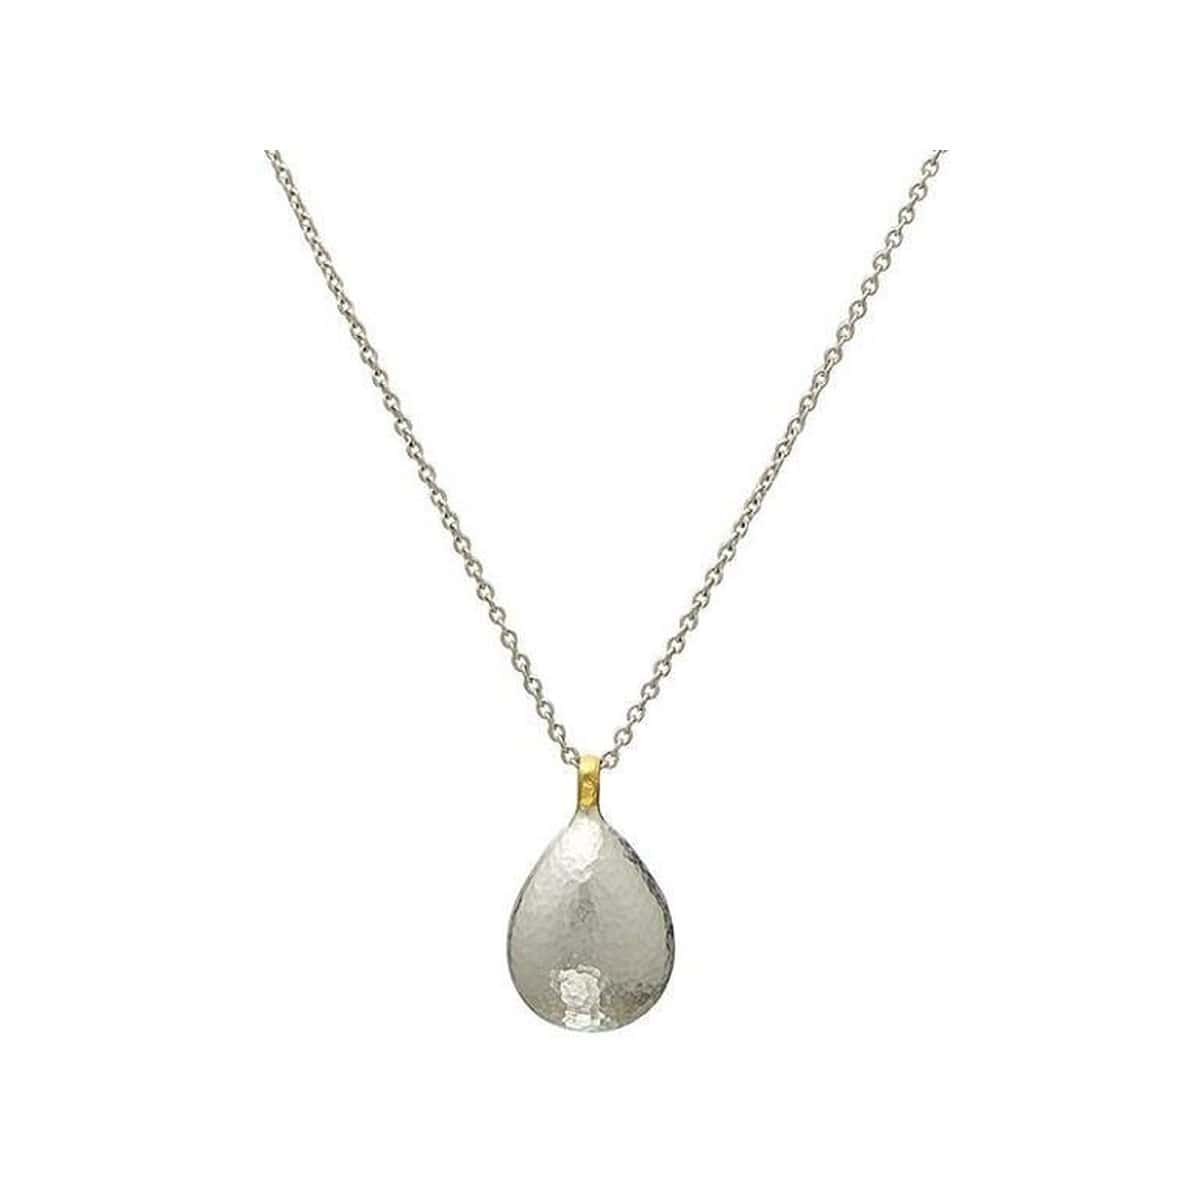 Spell Sterling Silver Necklace - SCHN-PDR2015W-SB-18-GURHAN-Renee Taylor Gallery